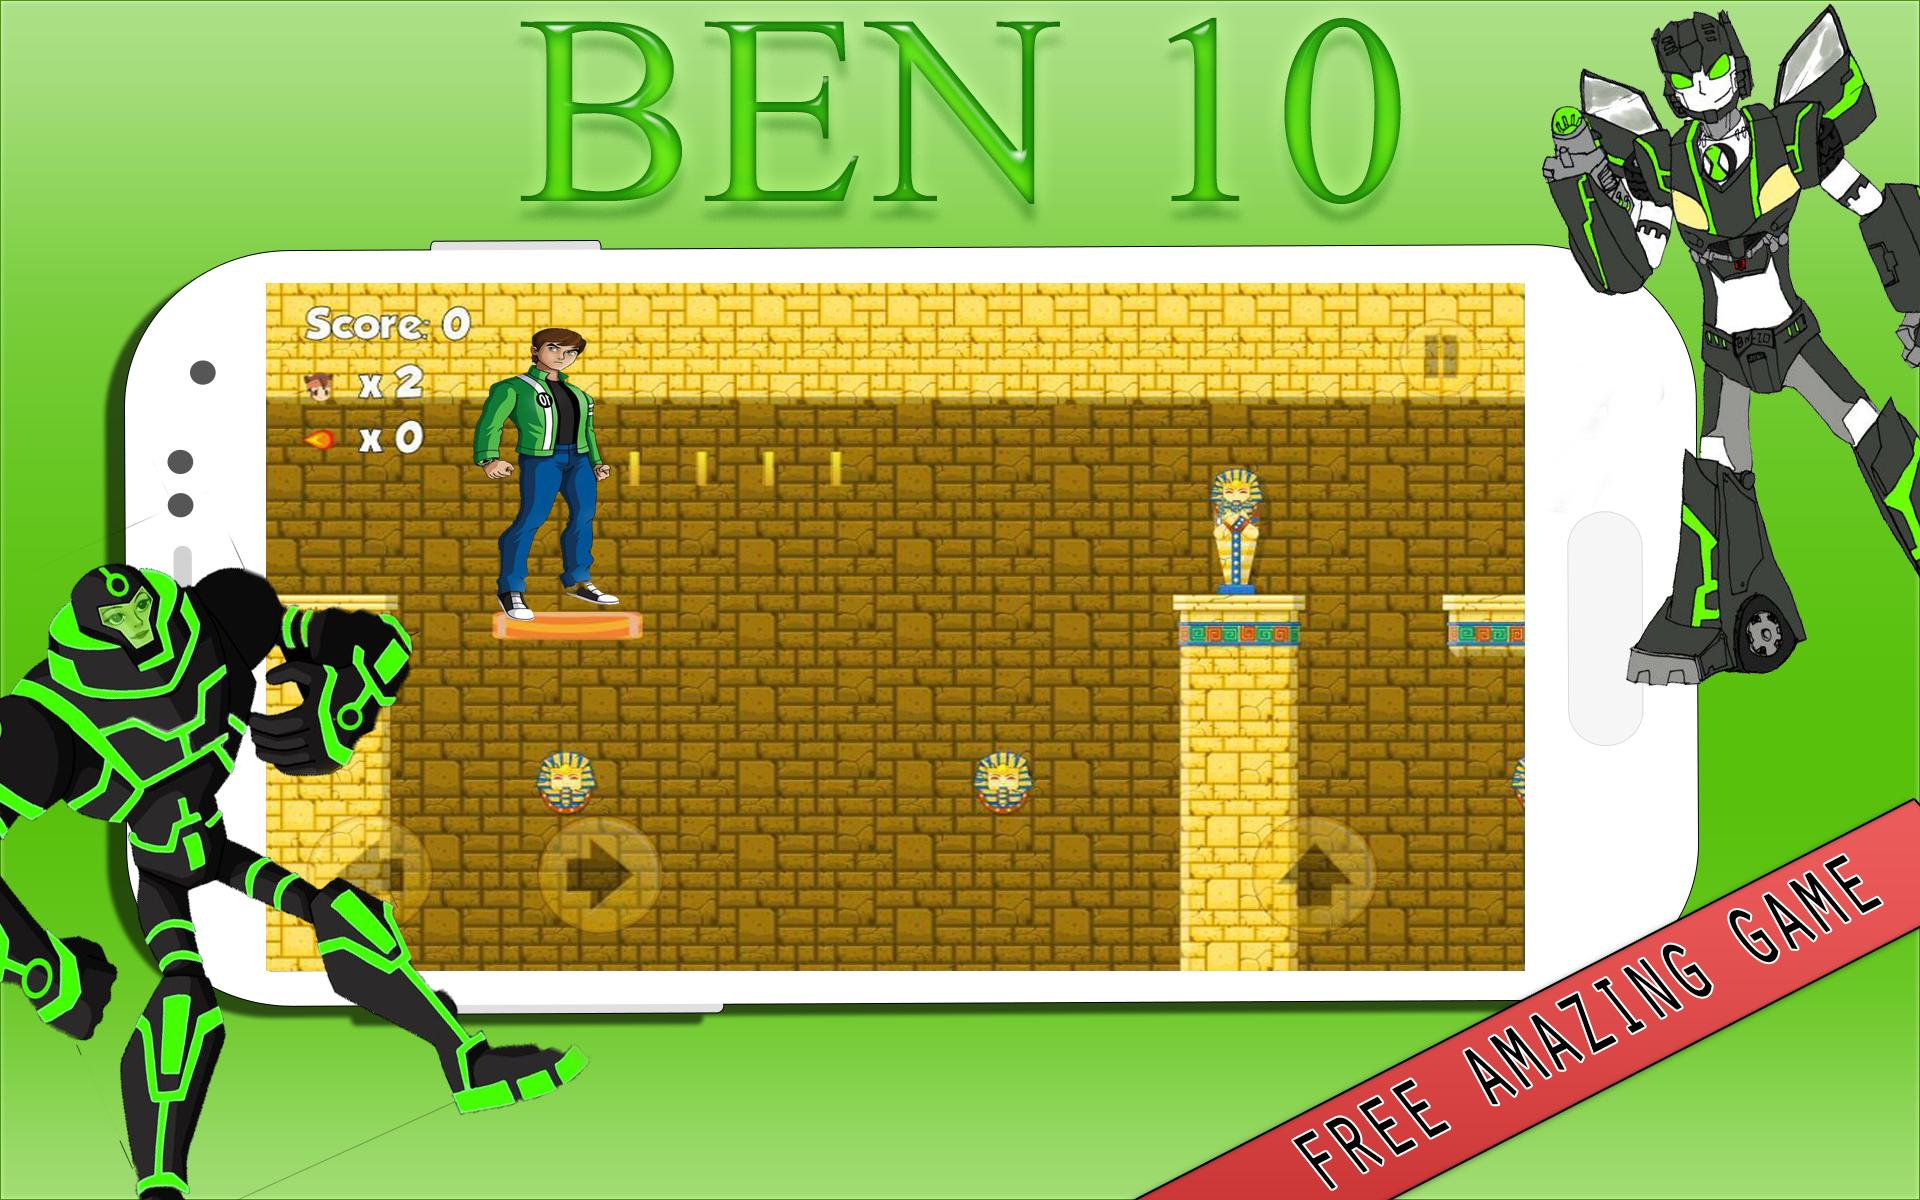 A Ira De Psychobos Download Pc hero ben fight alien battle for android - apk download